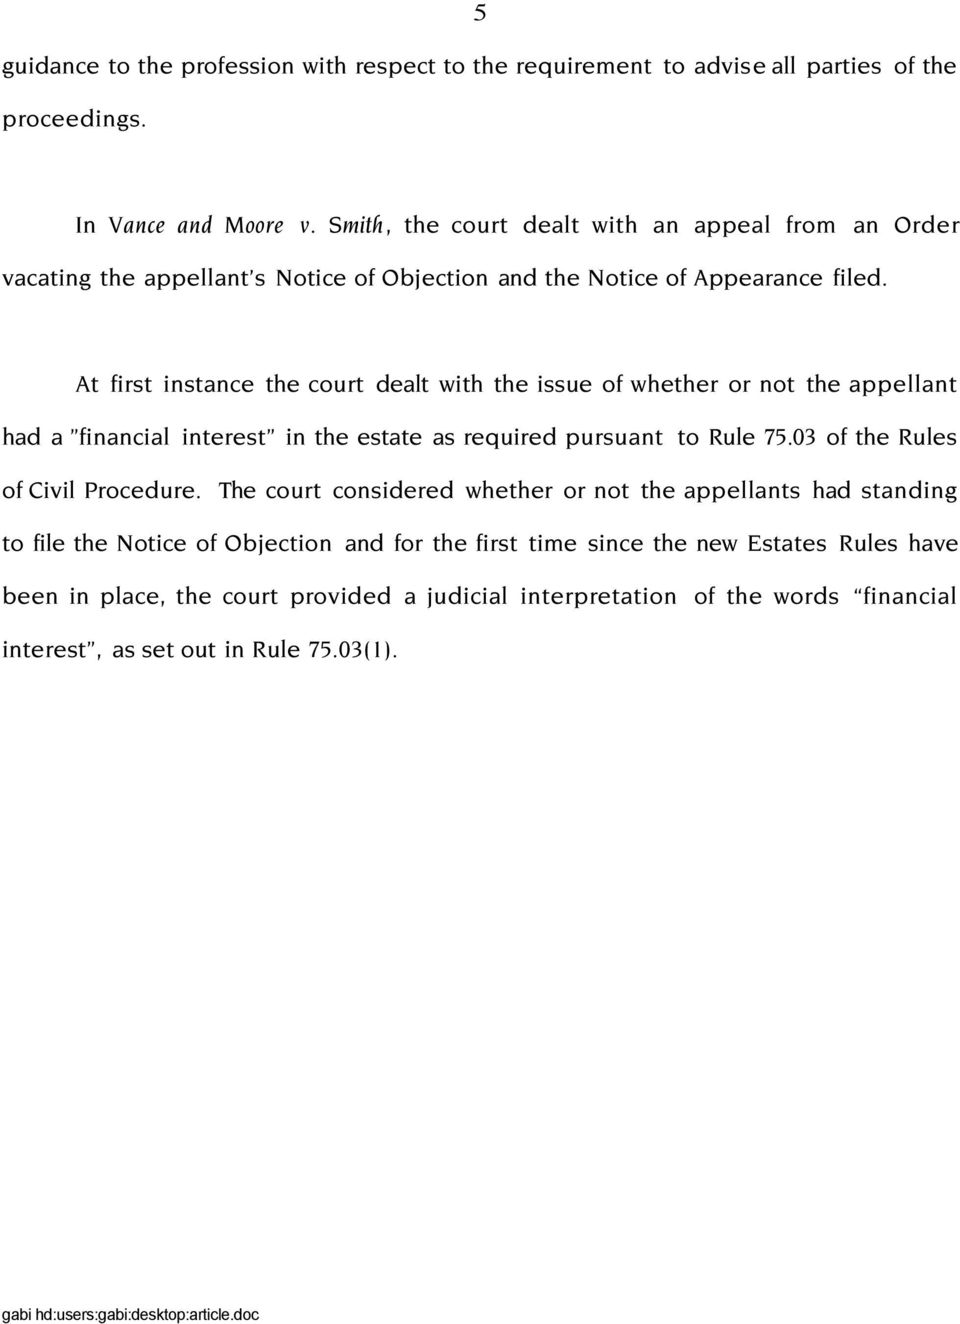 At first instance the court dealt with the issue of whether or not the appellant had a financial interest in the estate as required pursuant to Rule 75.